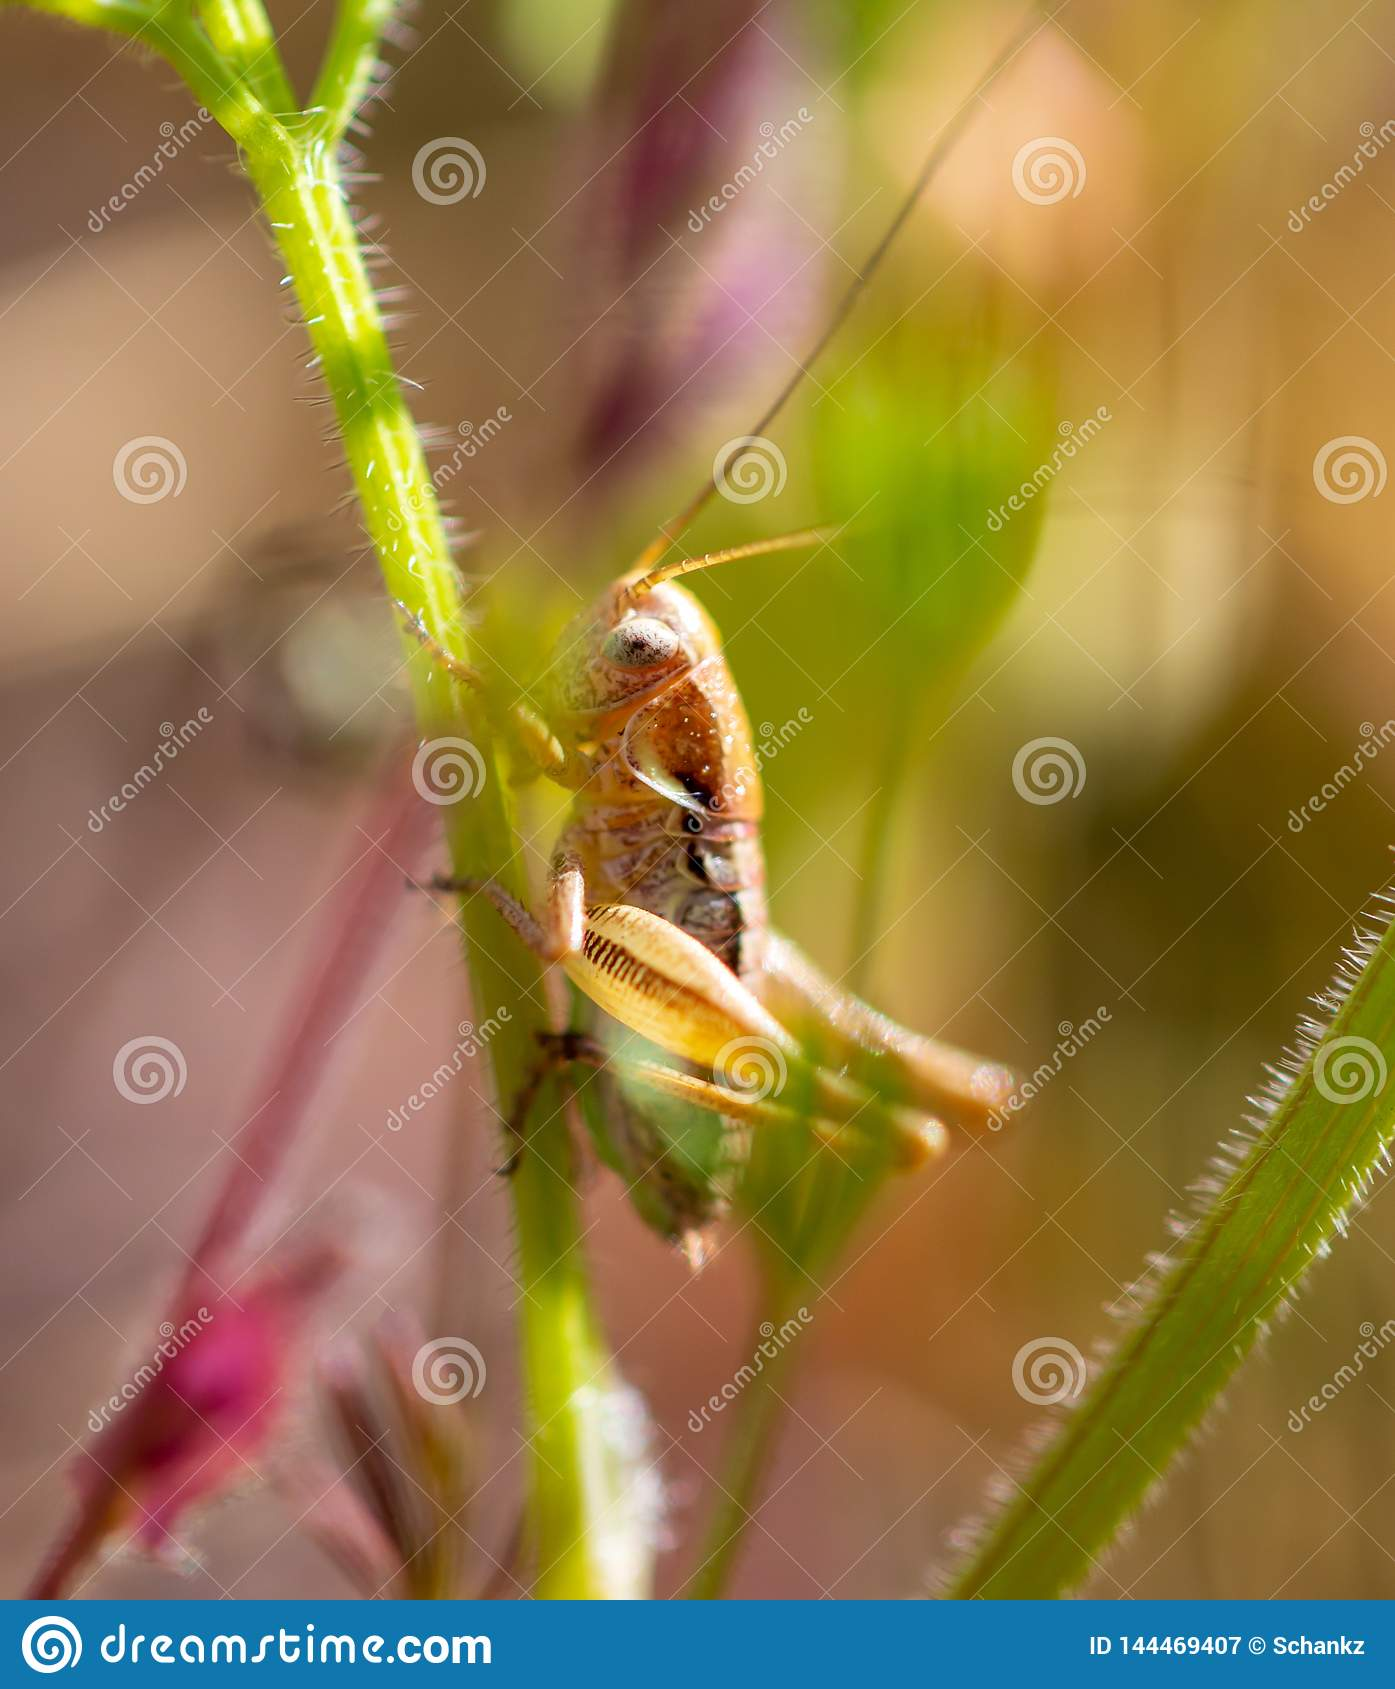 Grasshopper in nature in spring